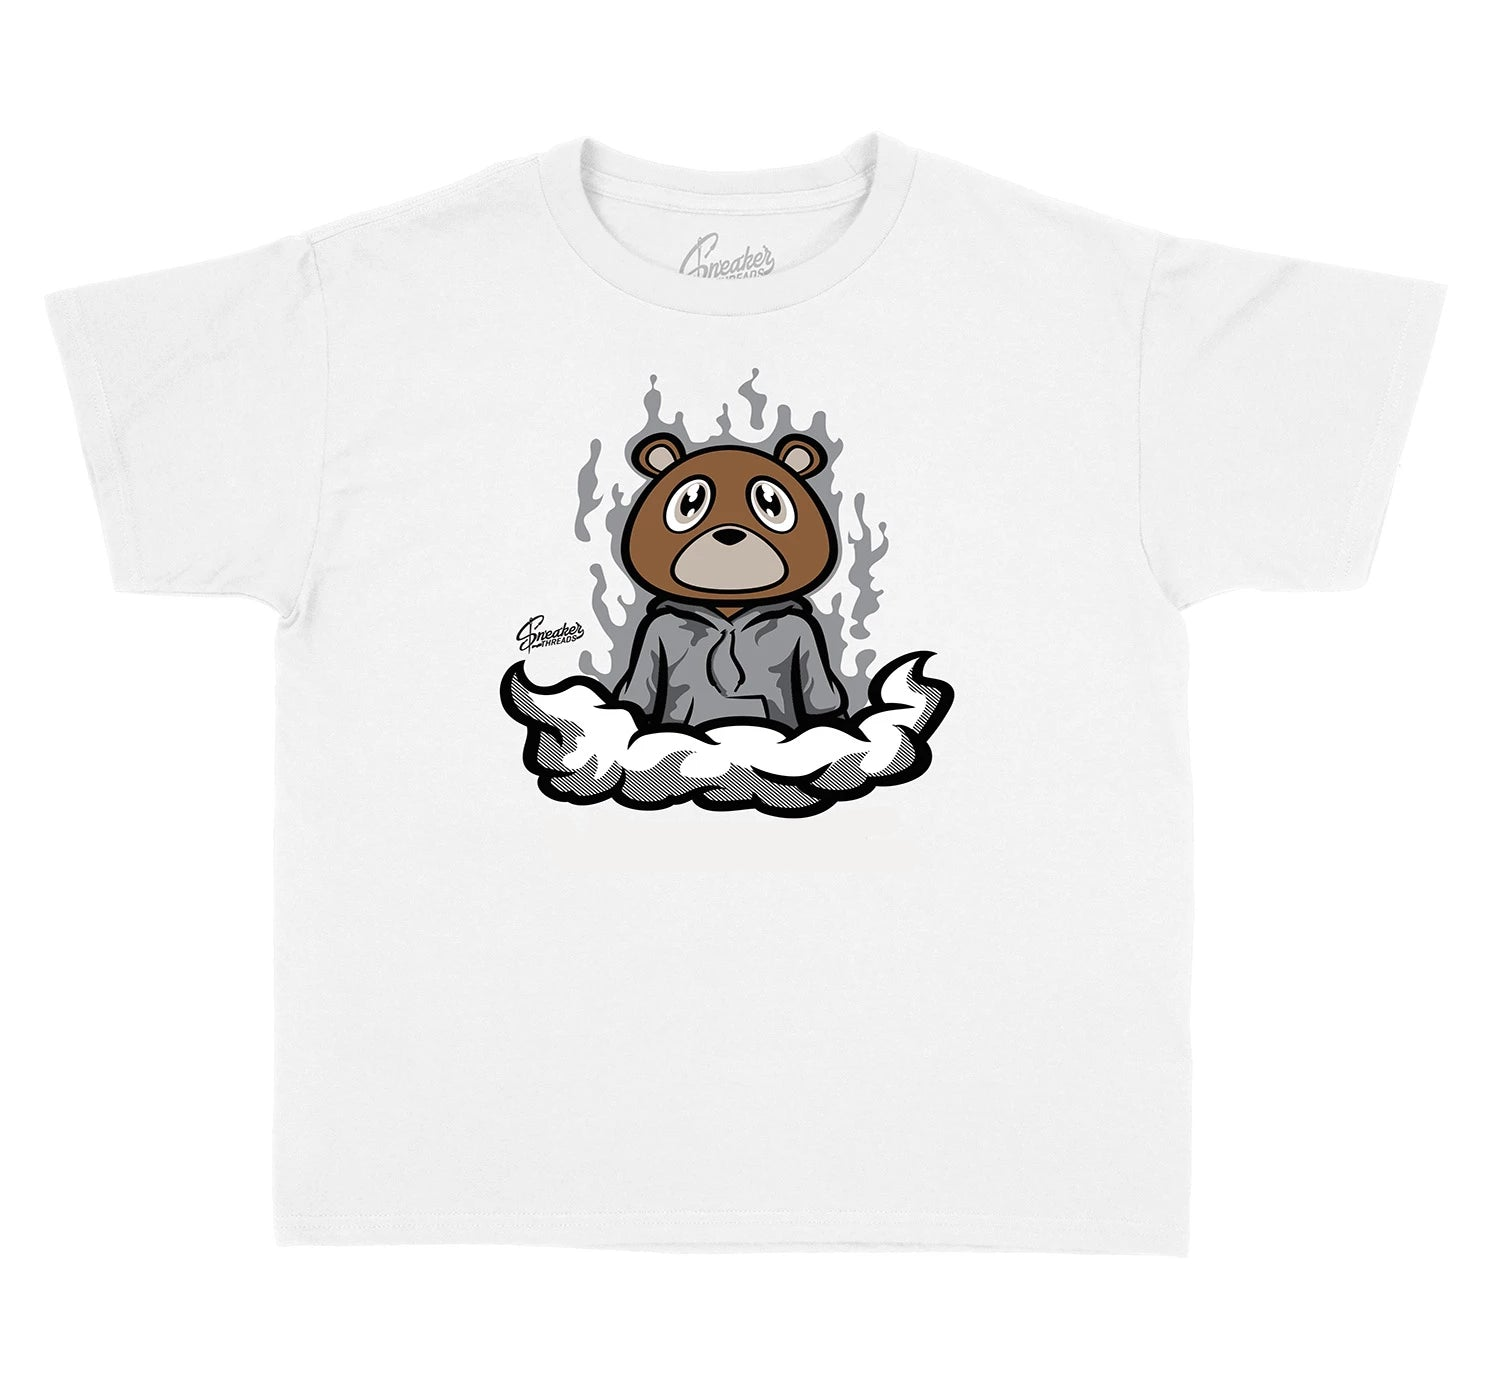 Yeezy Boost Kids shirt collection to for Cloud White 350